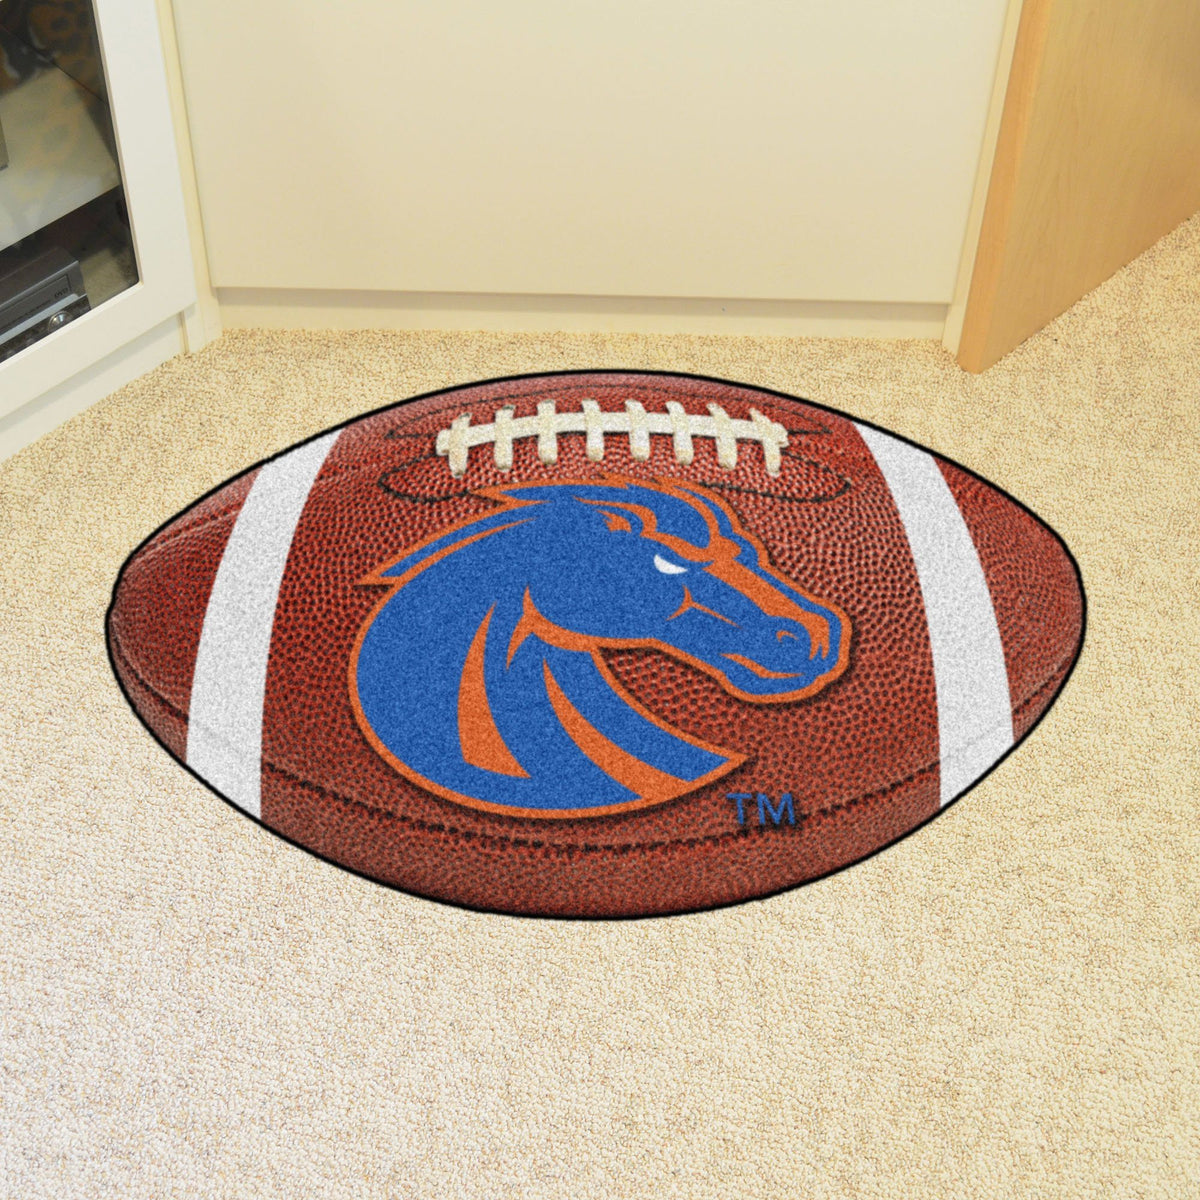 Collegiate - Football Mat: A - K Collegiate Mats, Rectangular Mats, Football Mat, Collegiate, Home Fan Mats Boise State